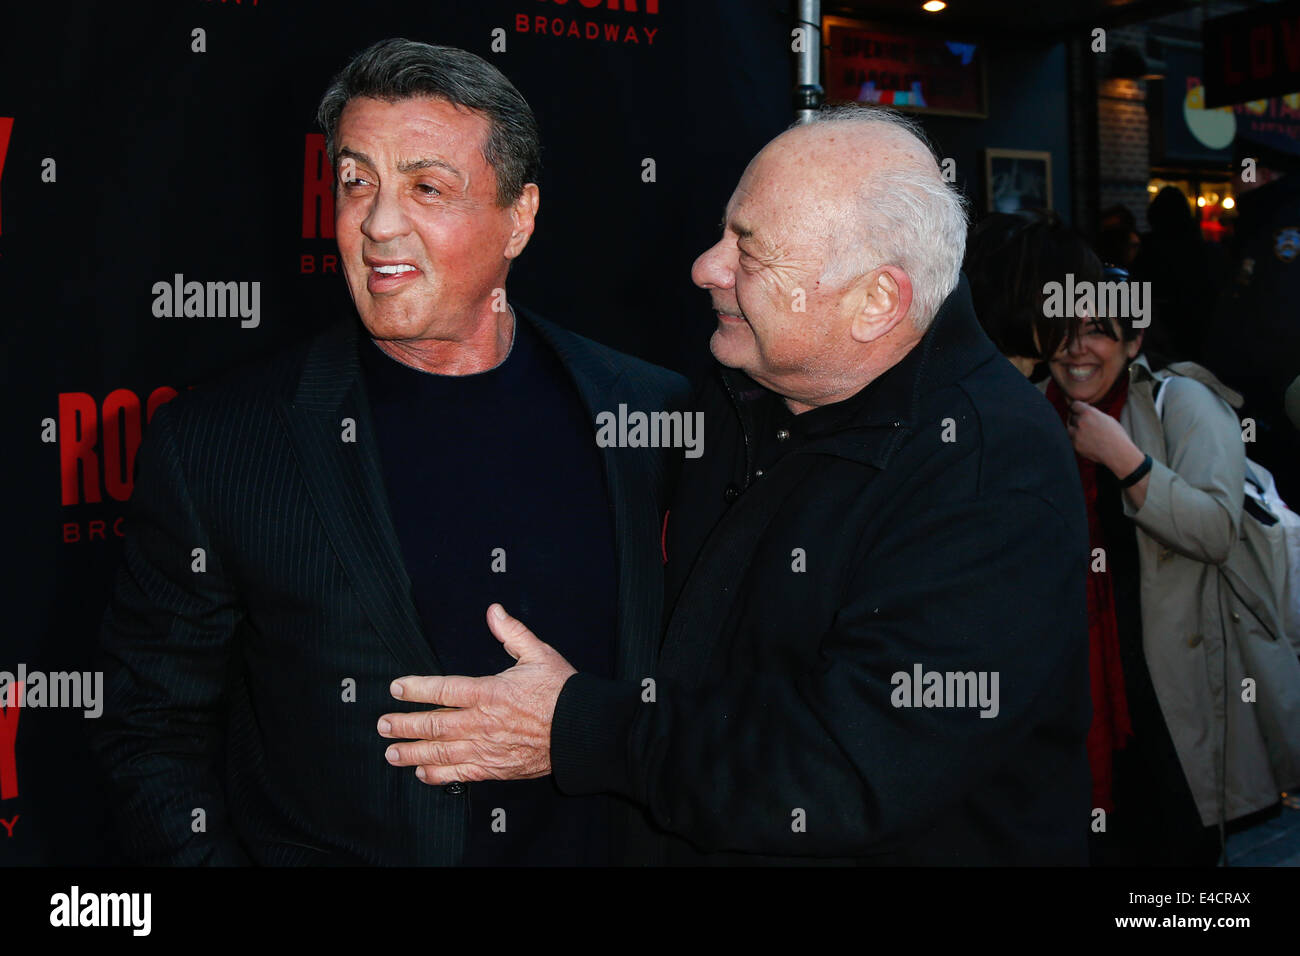 Actors Sylvester Stallone (L) and Burt Young attend the 'Rocky' Broadway opening night at the Winter Garden Theatre. Stock Photo